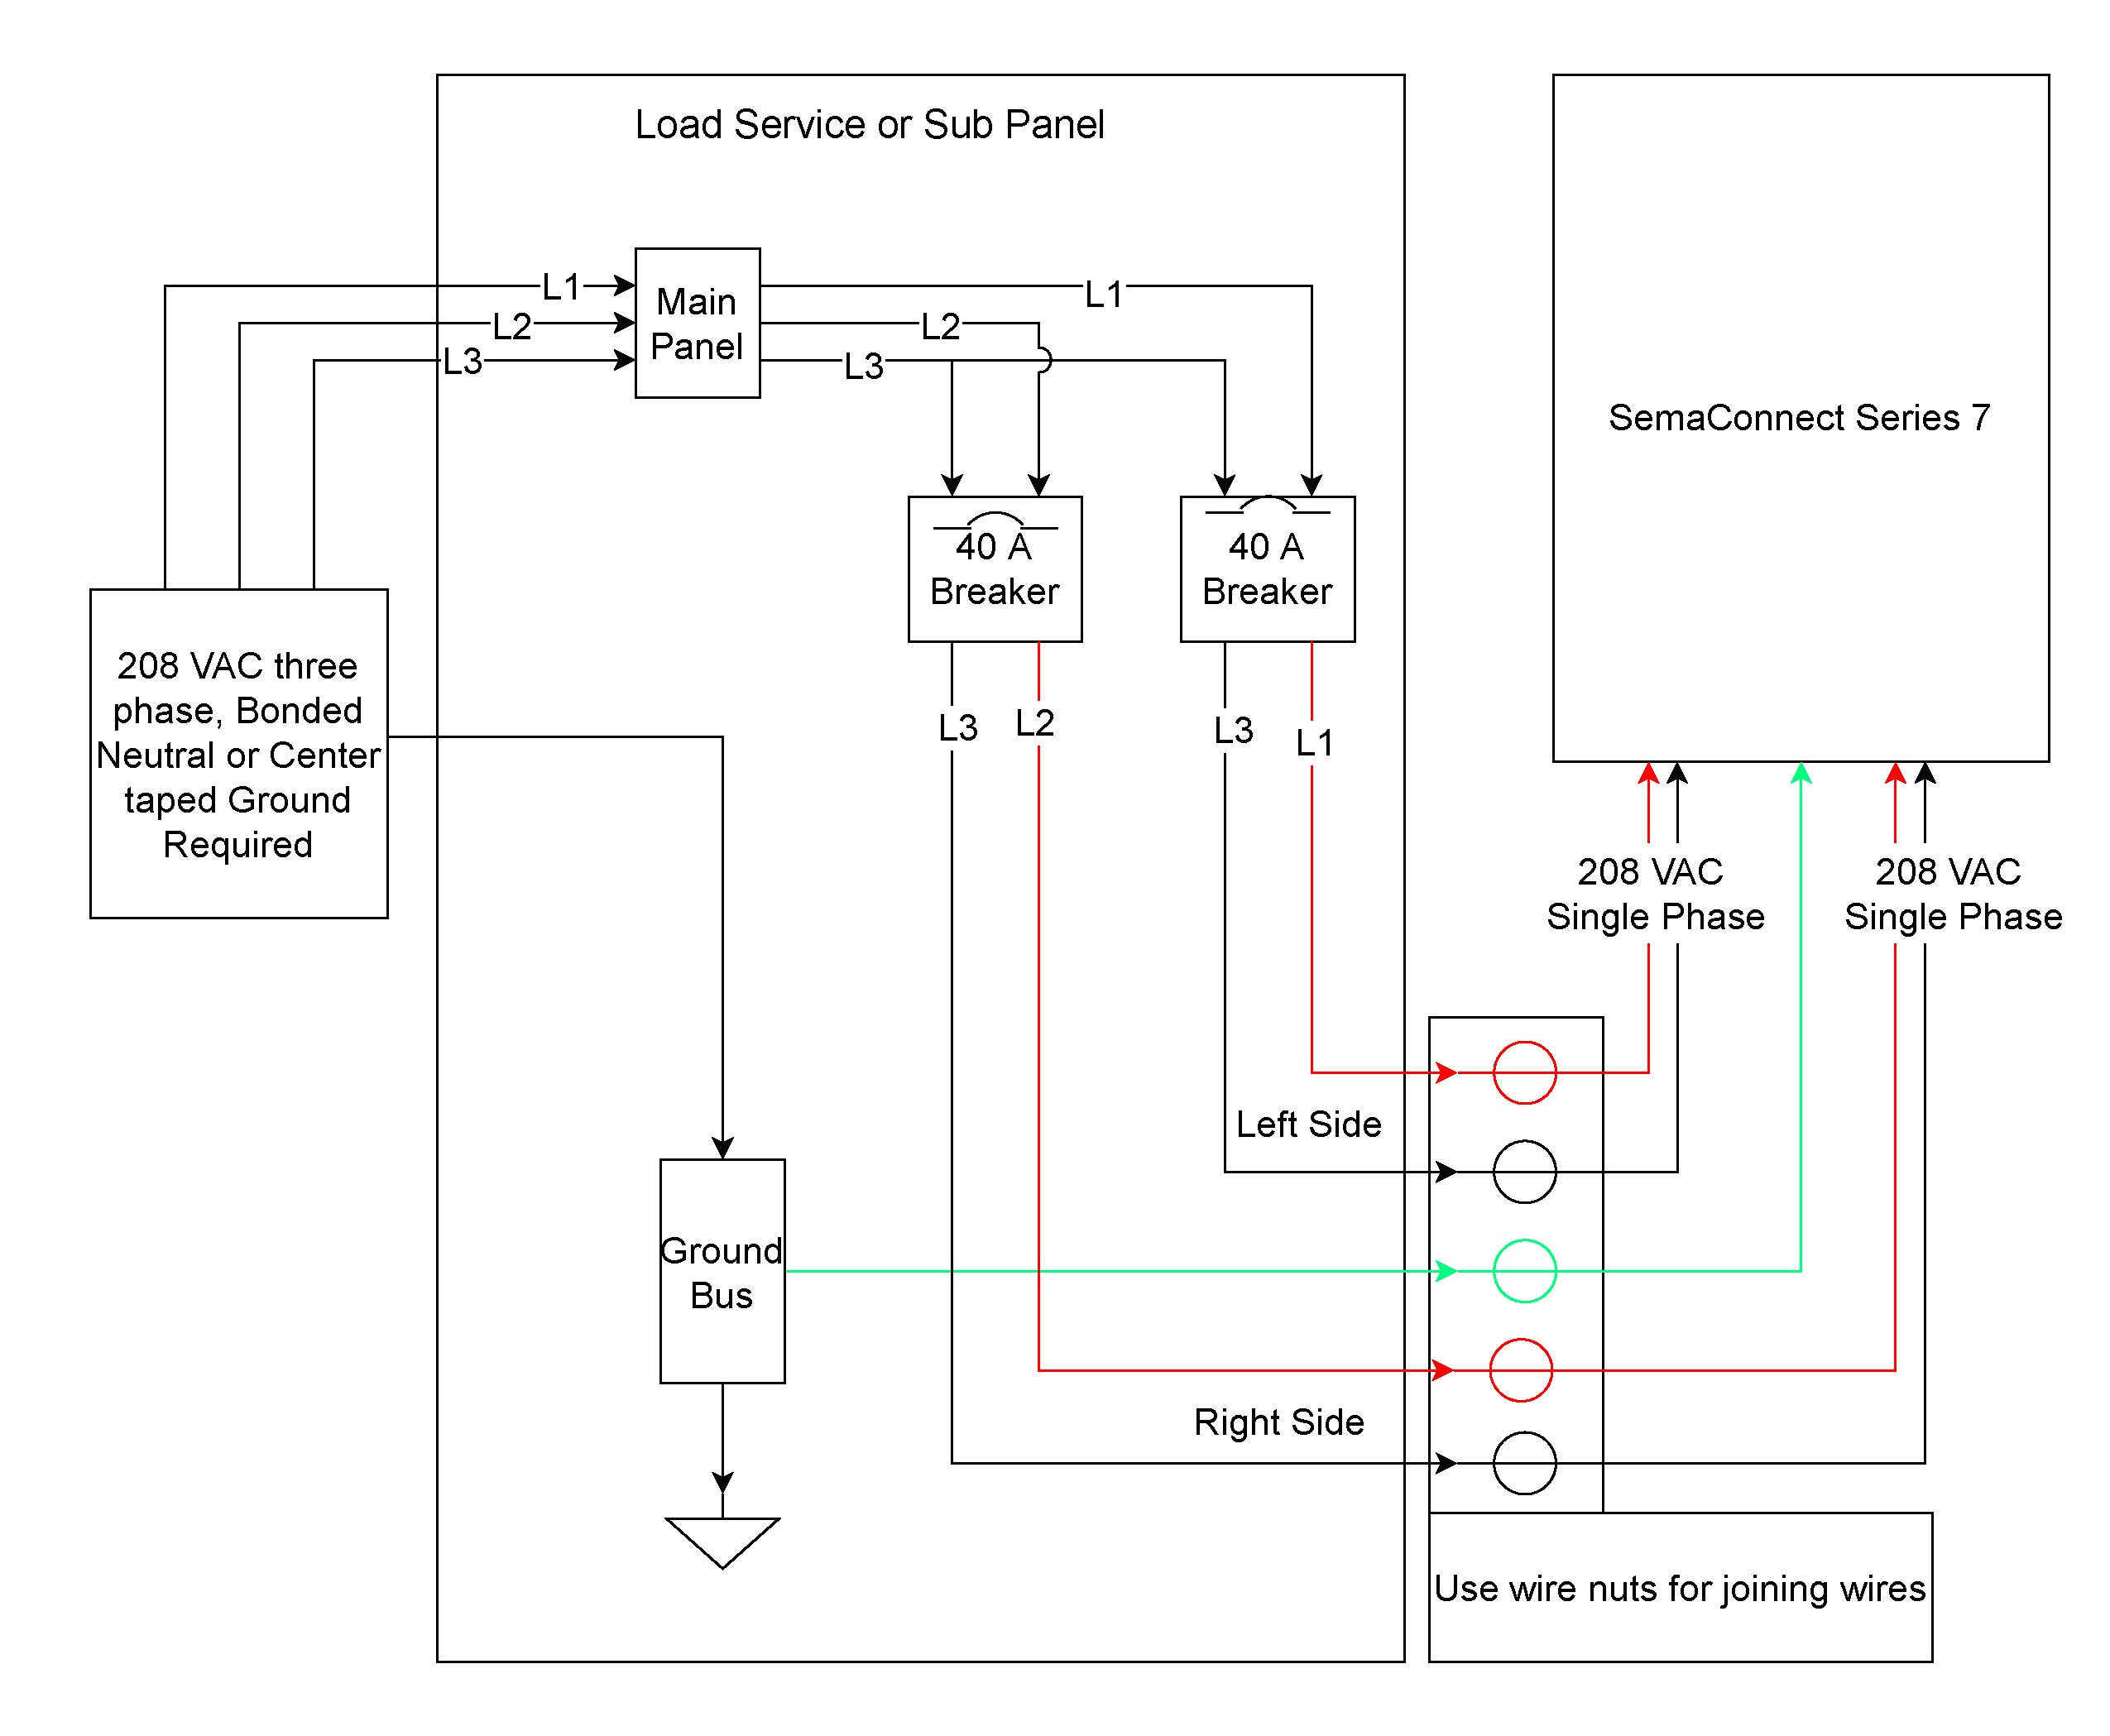 A O Smith Wiring Diagram. ao smith dl1036 wiring diagram. ao smith tjv 120m  piping diagram. a o smith d1026 wiring diagram. ao smith motor wiring  schematic. motor wiring diagram 19 wiringA.2002-acura-tl-radio.info. All Rights Reserved.